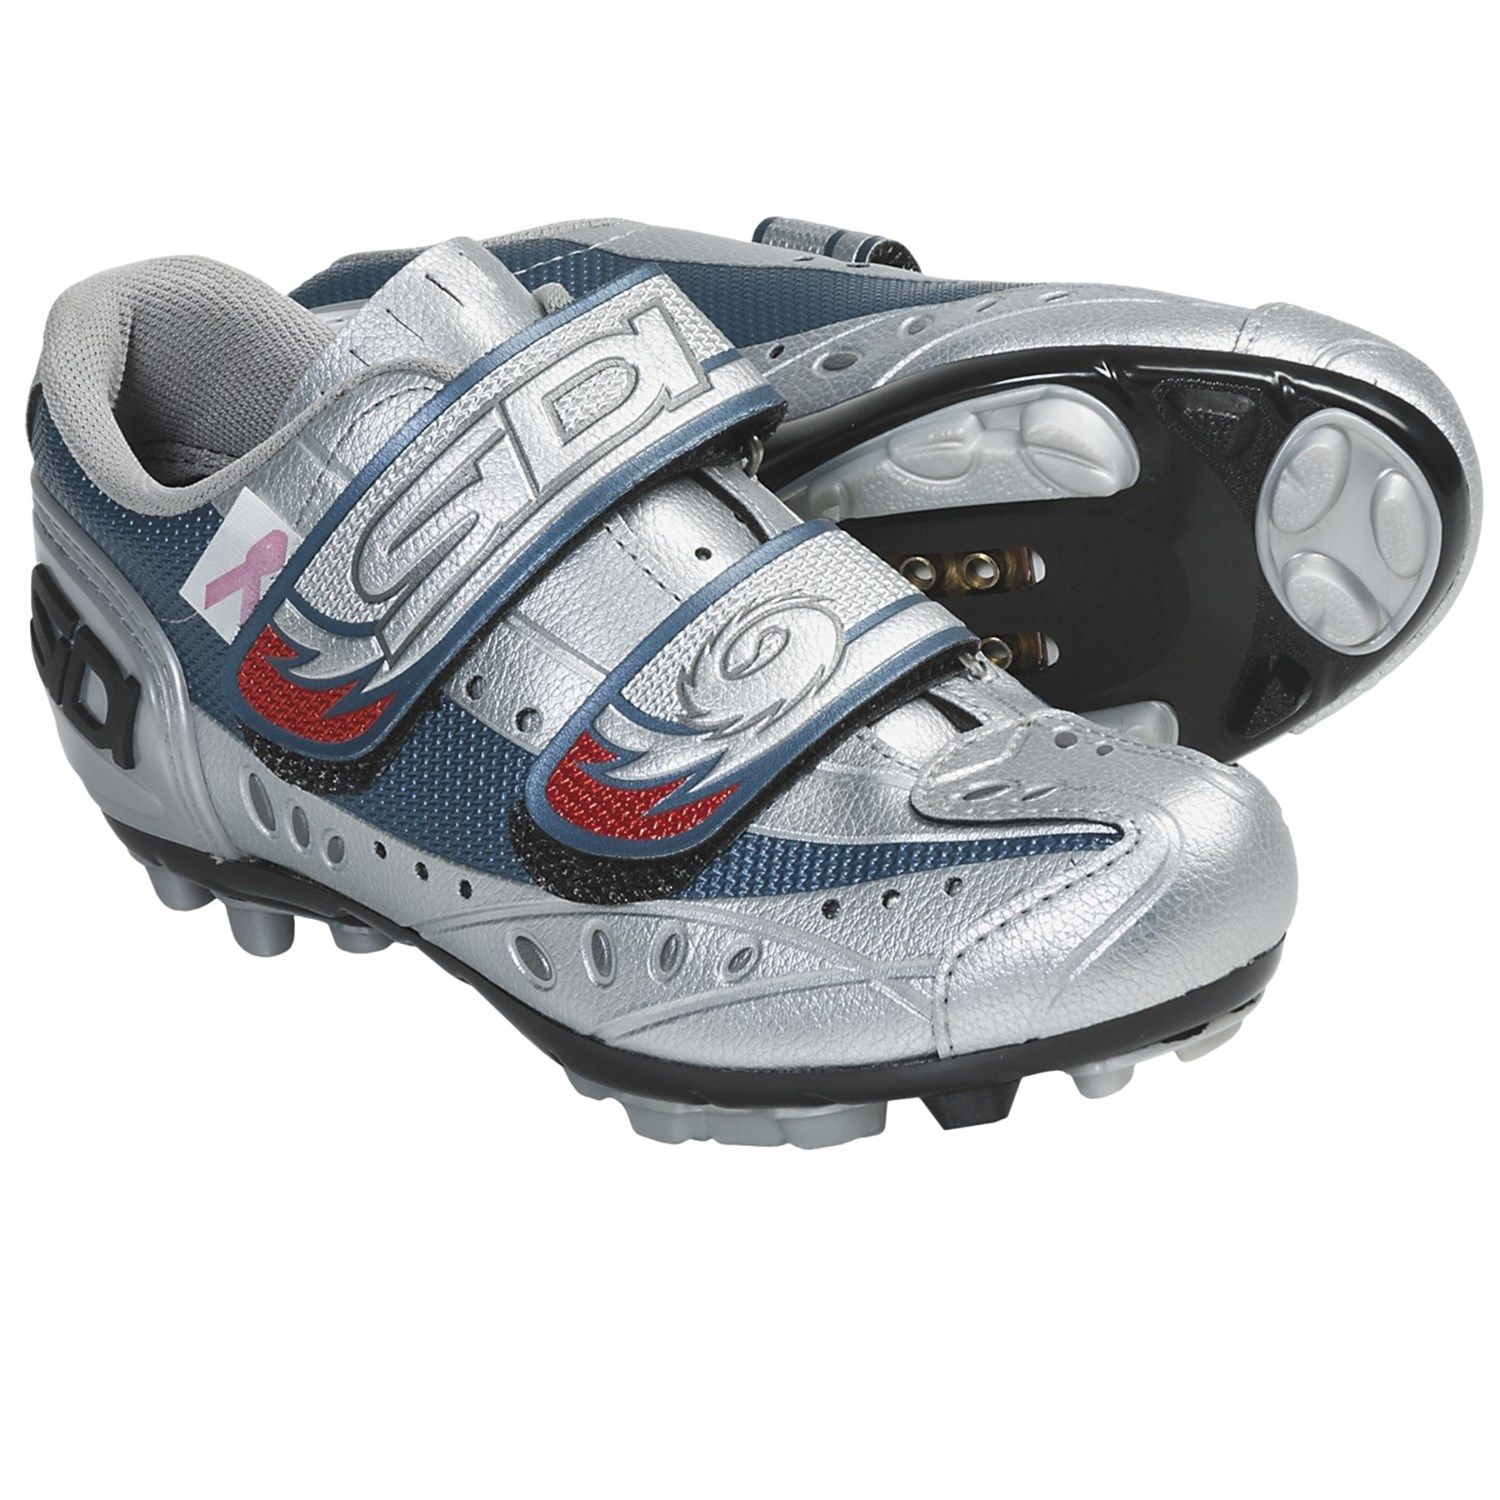 SIDI MOON women's road shoes offers at the cycling shop ROSE Bikes